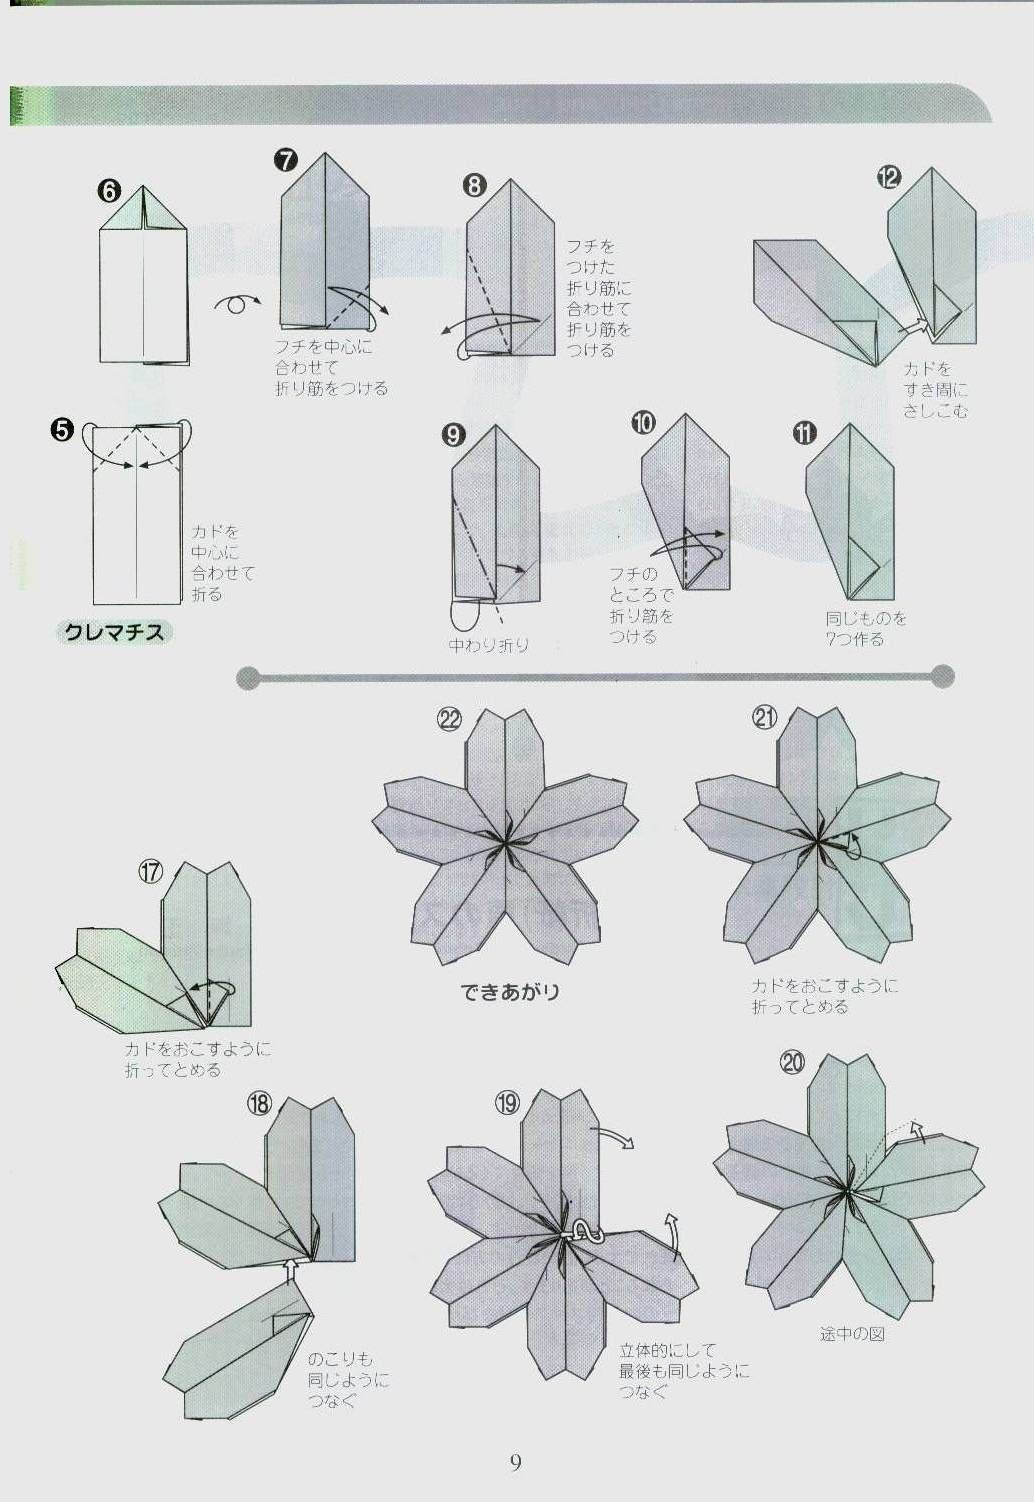 hight resolution of rare origami cherry blossom diagram download paper kawaii